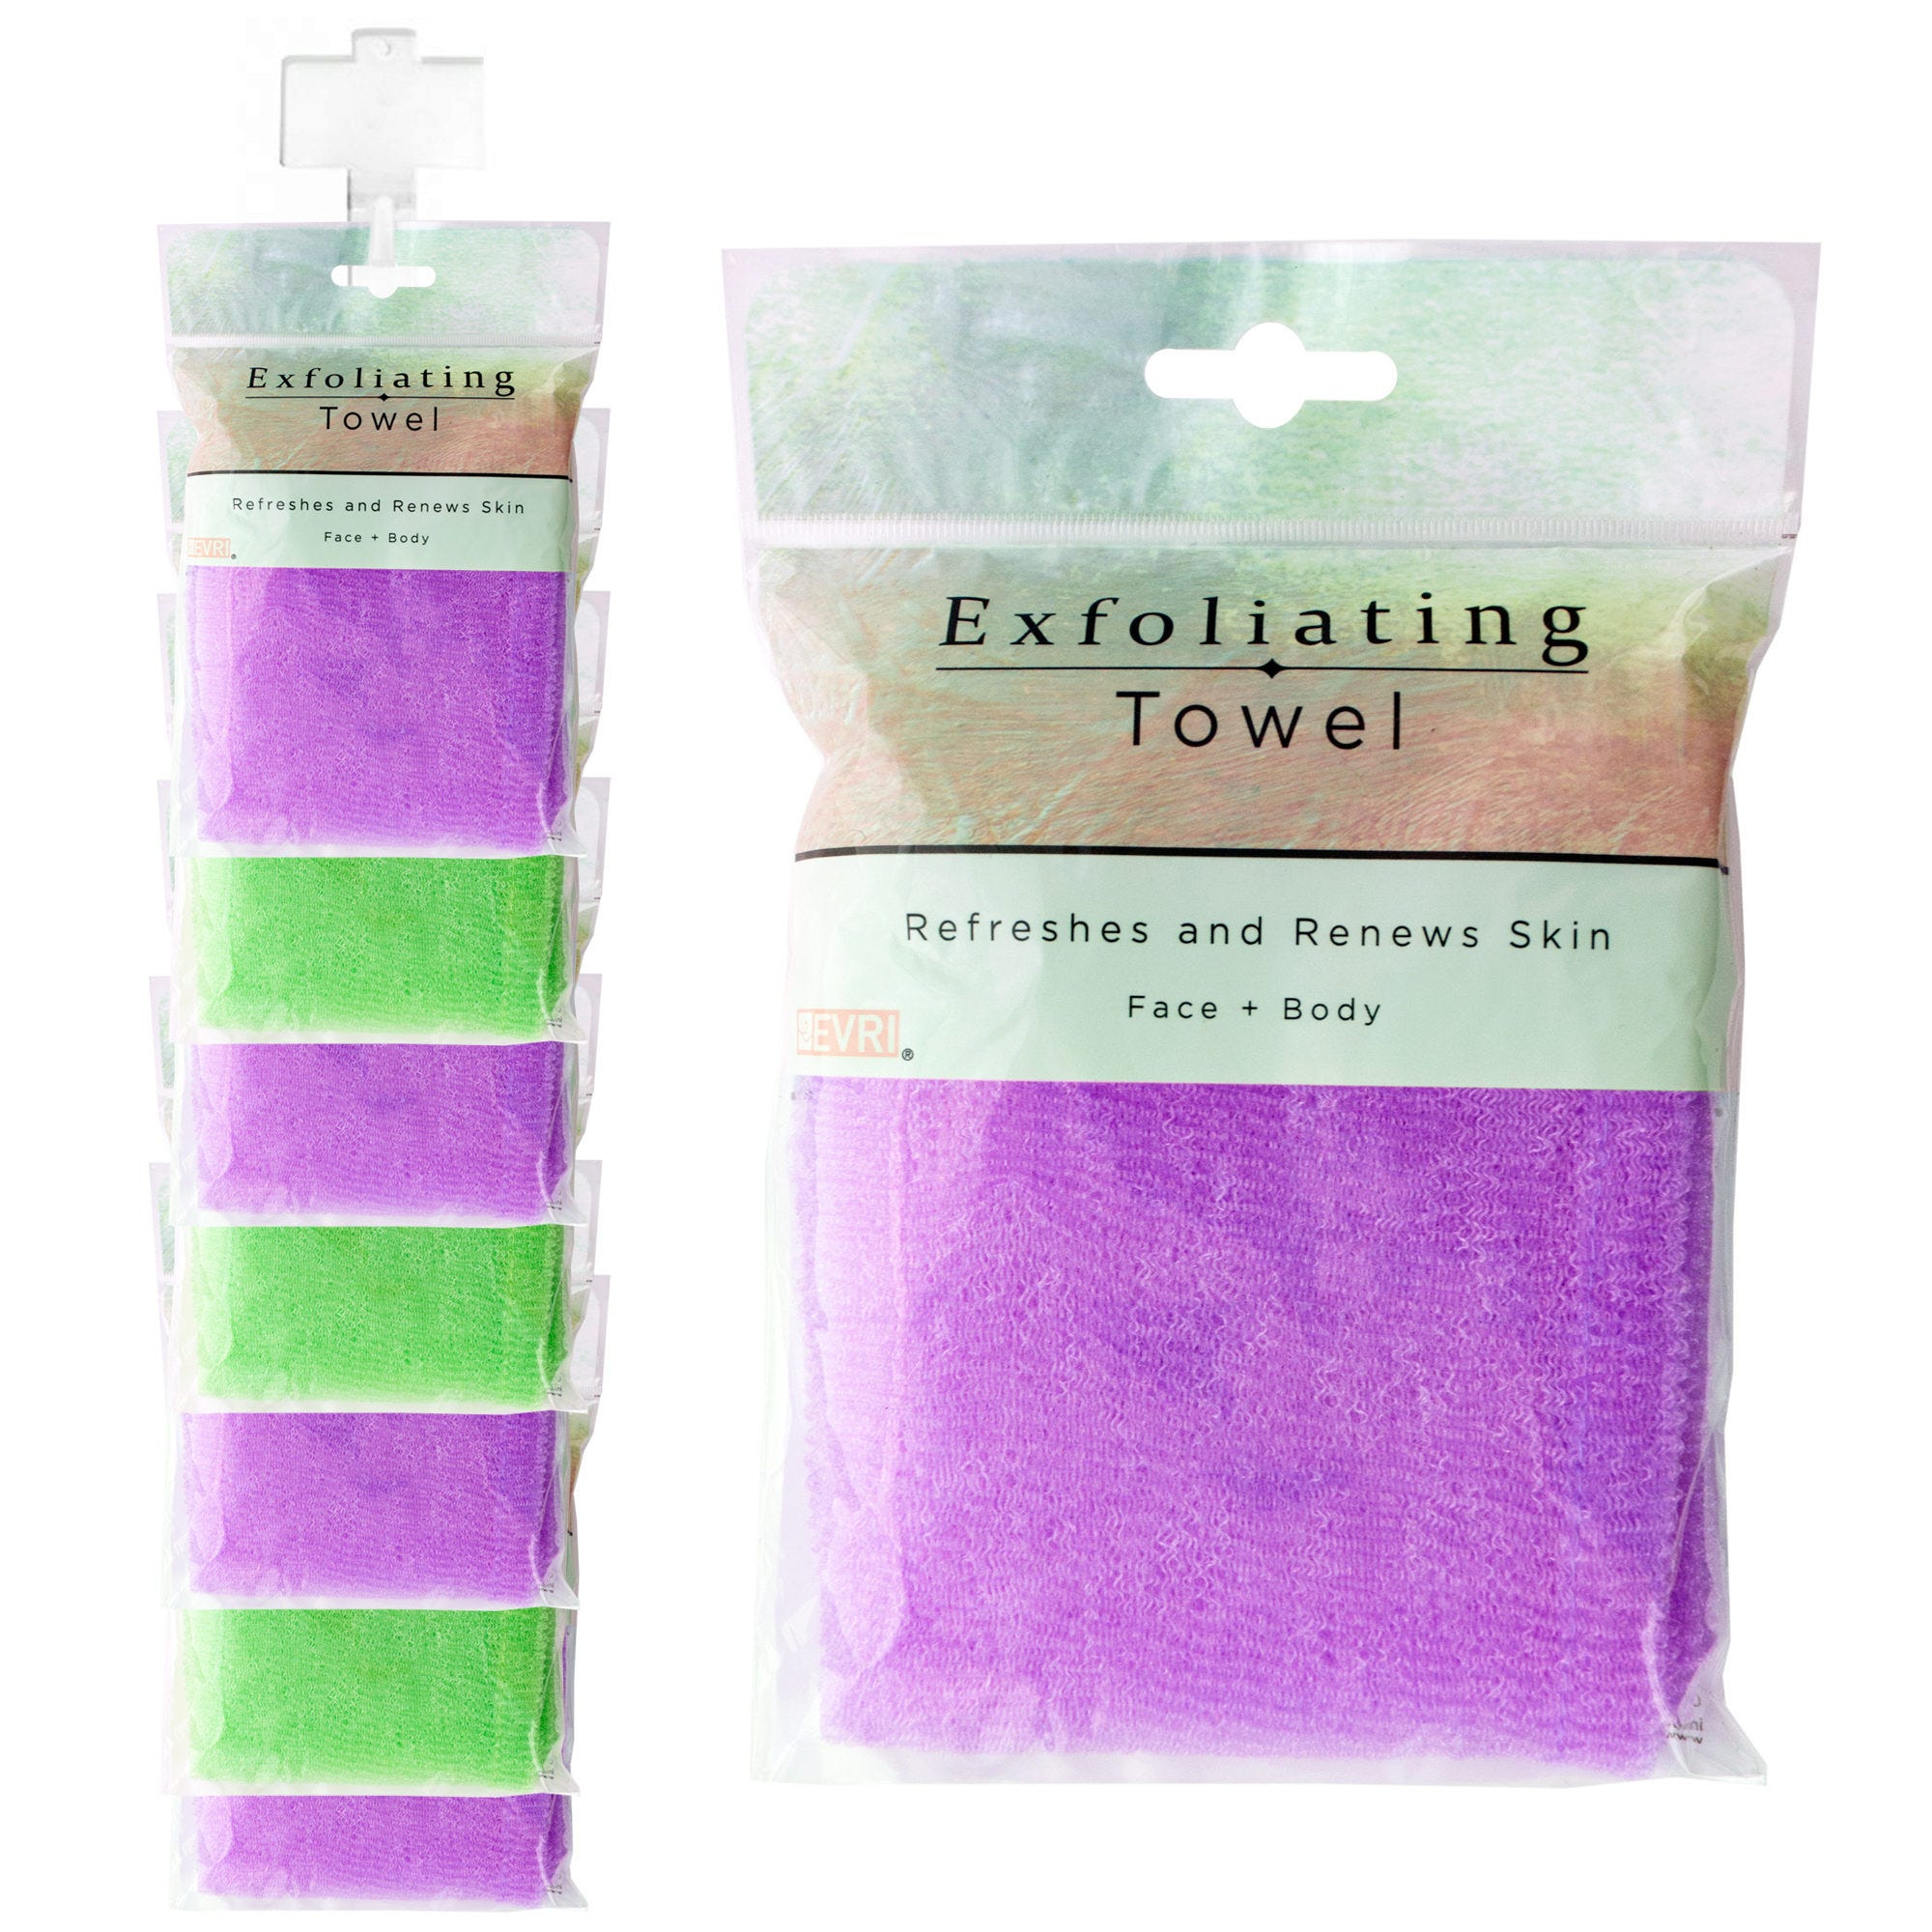 Exfoliating Shower TOWEL Clip Strip- Qty 9